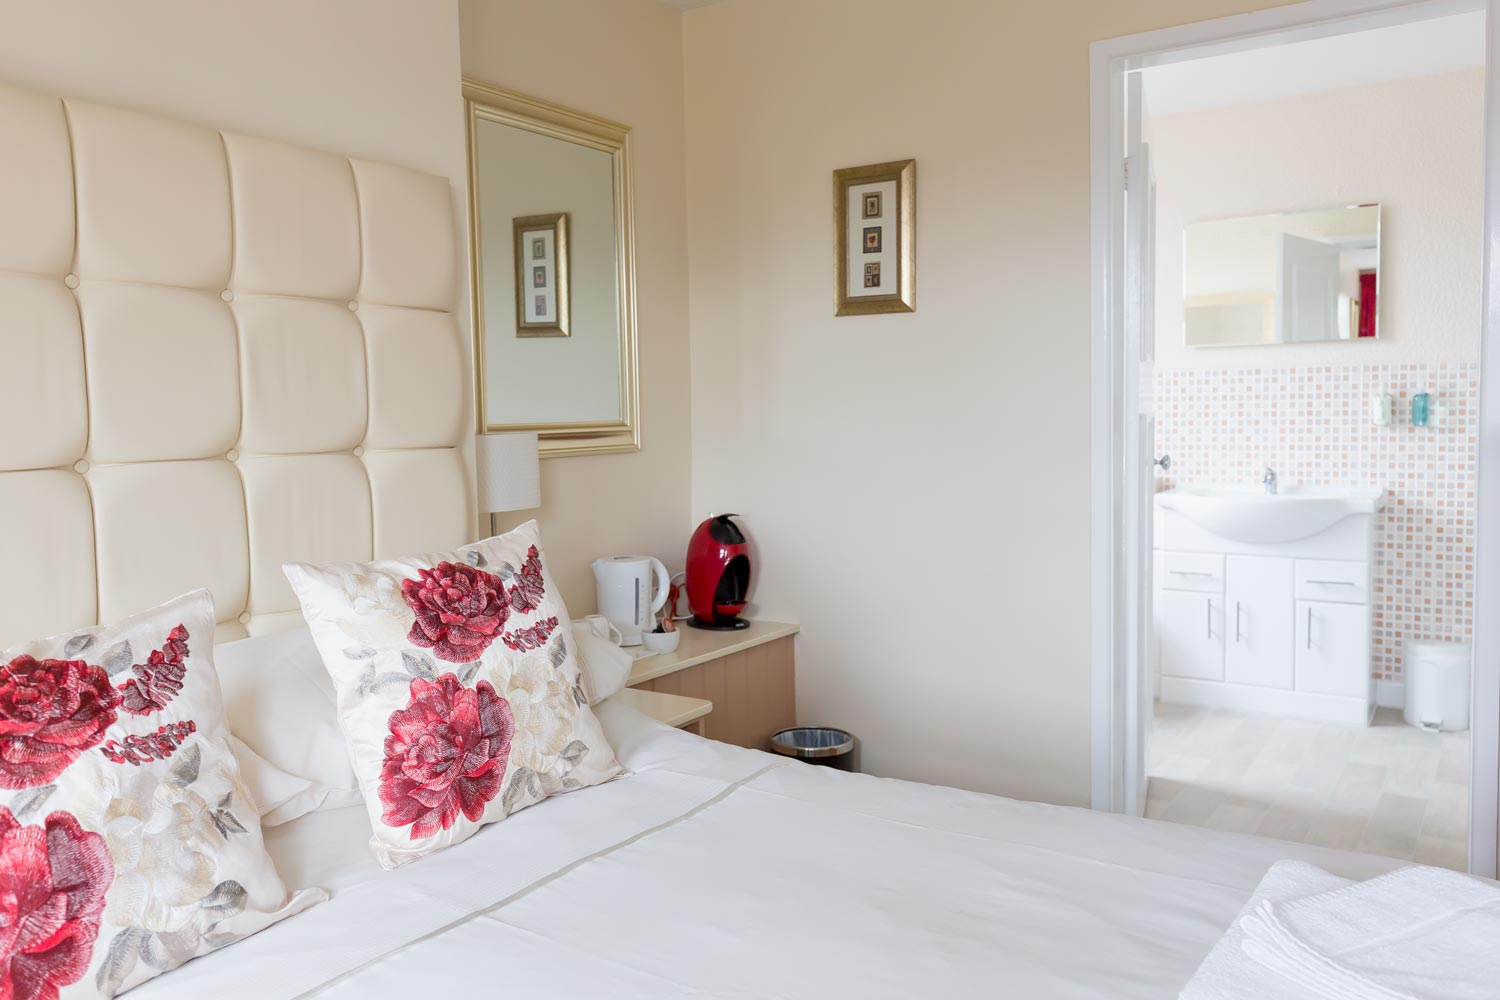 Bed And Breakfast Alton Towers Family Room